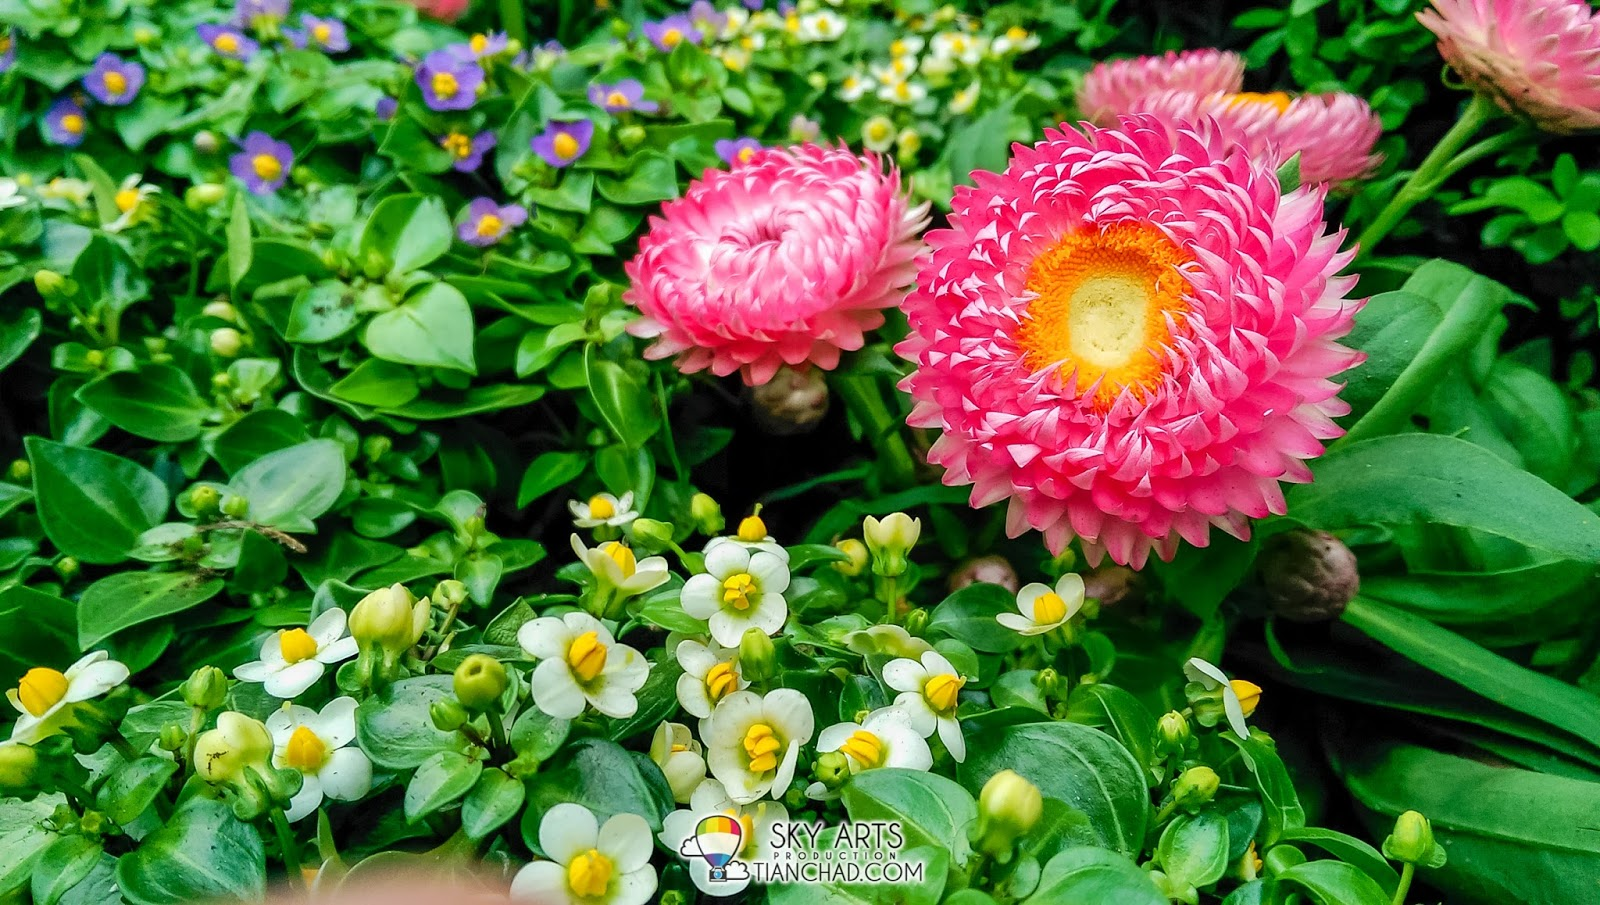 Colorful combination of real flowers blooming at Flower Dome @ Gardens by the Bay